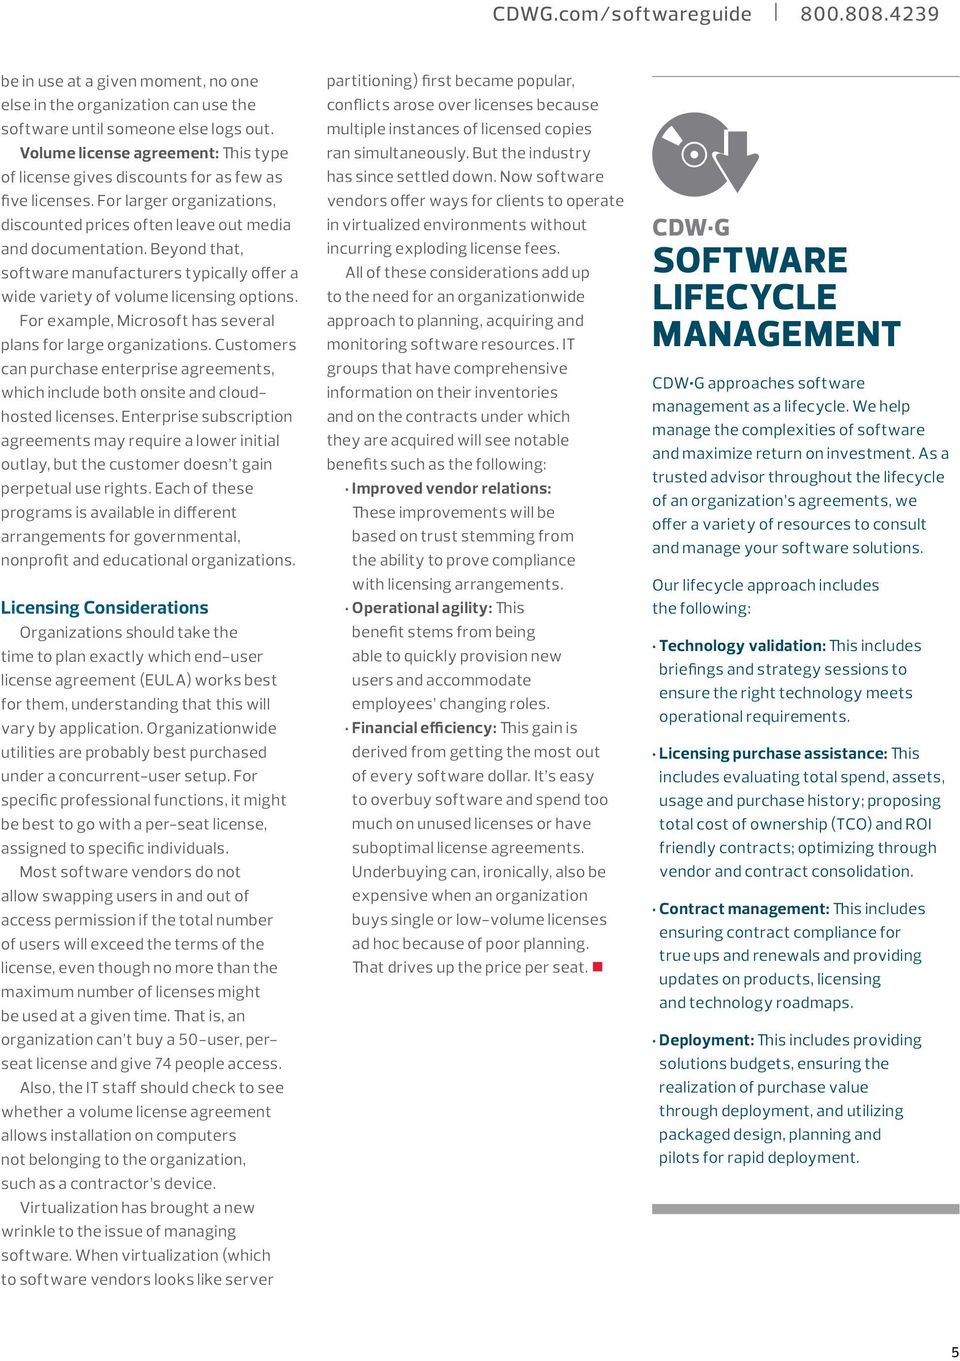 Beyond that, software manufacturers typically offer a wide variety of volume licensing options. For example, Microsoft has several plans for large organizations.